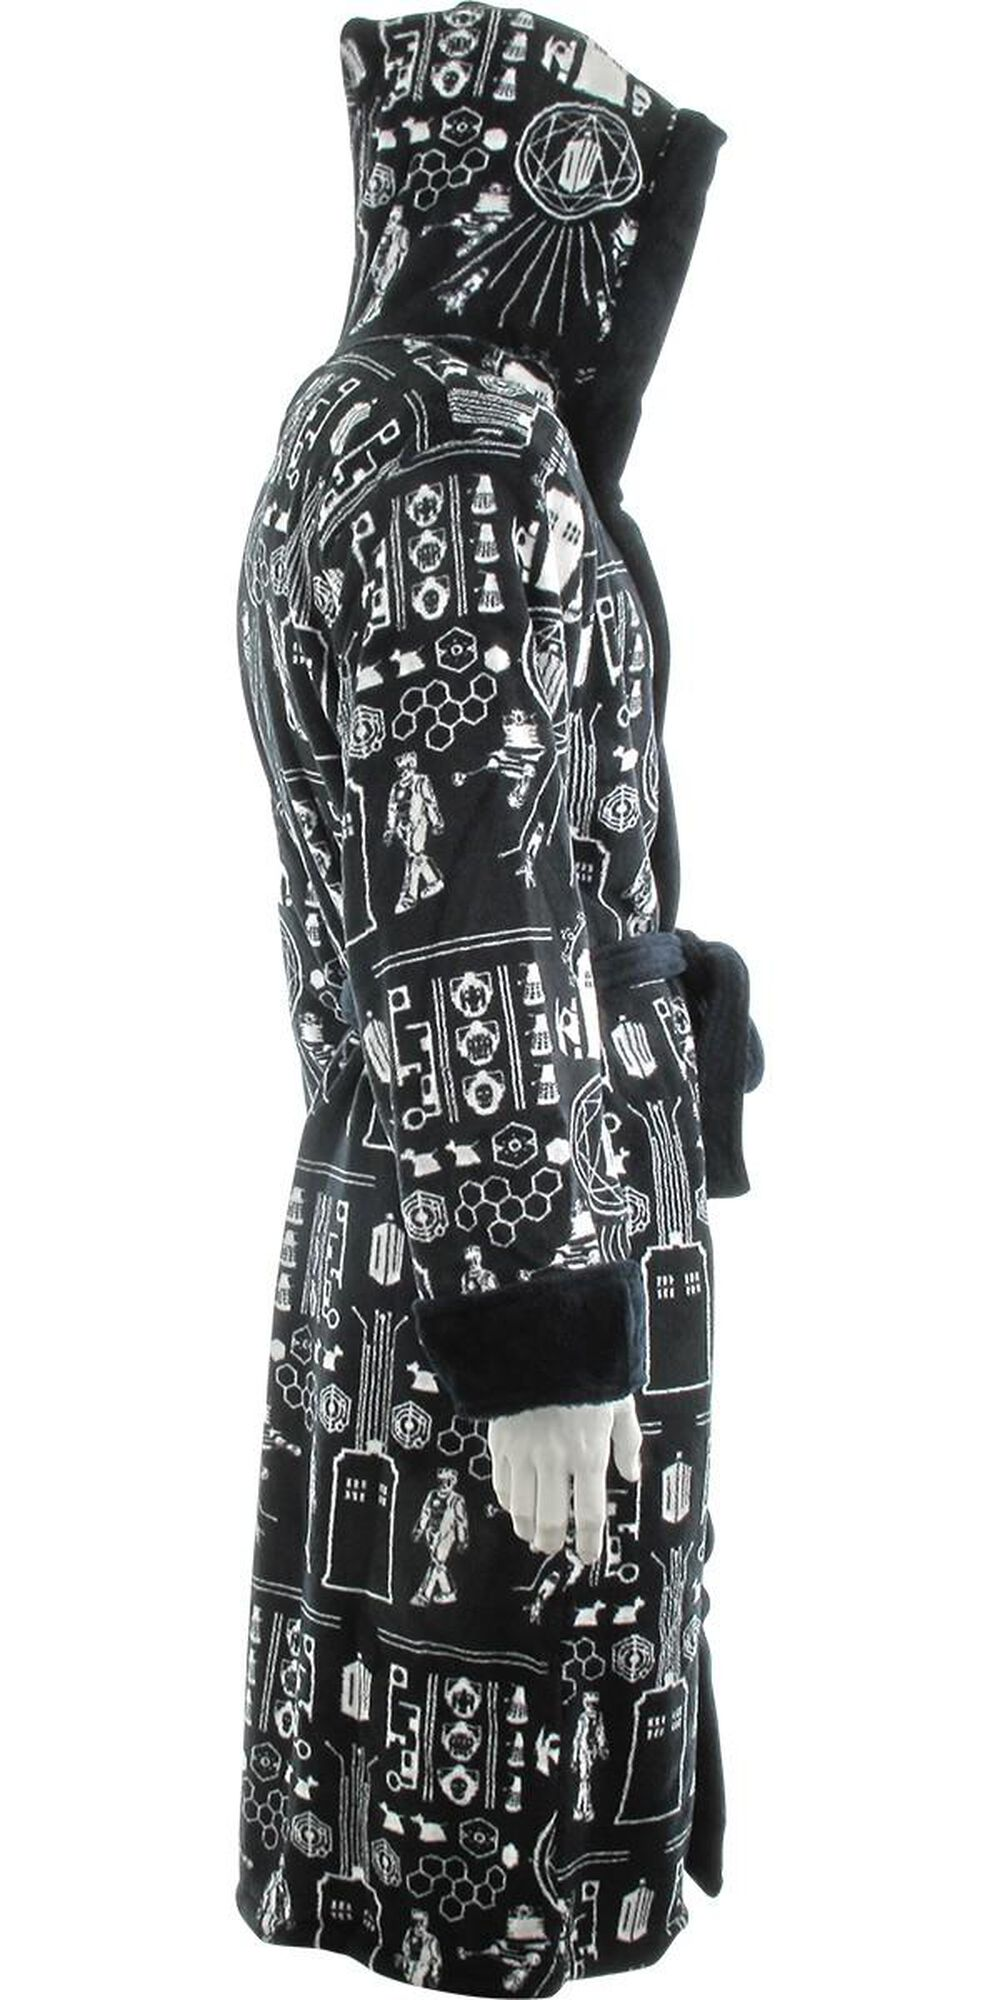 Images. Doctor Who Time Lord All Over Hooded Fleece Robe 95b06c4b7